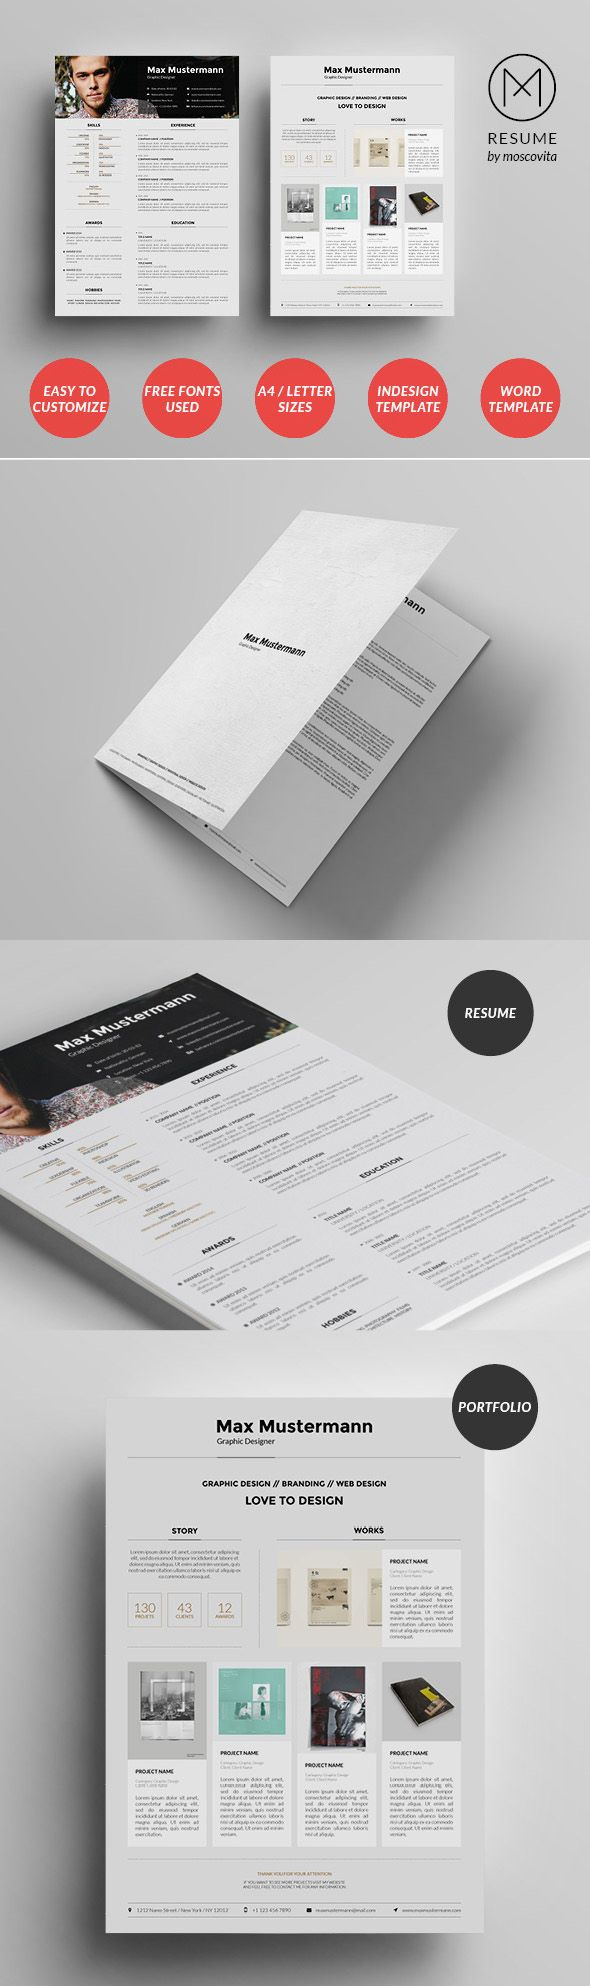 best images about creative resume creative and will it represent you creatively allowing you to stand out distinctively in a crowded pool of applicants if you ve recently